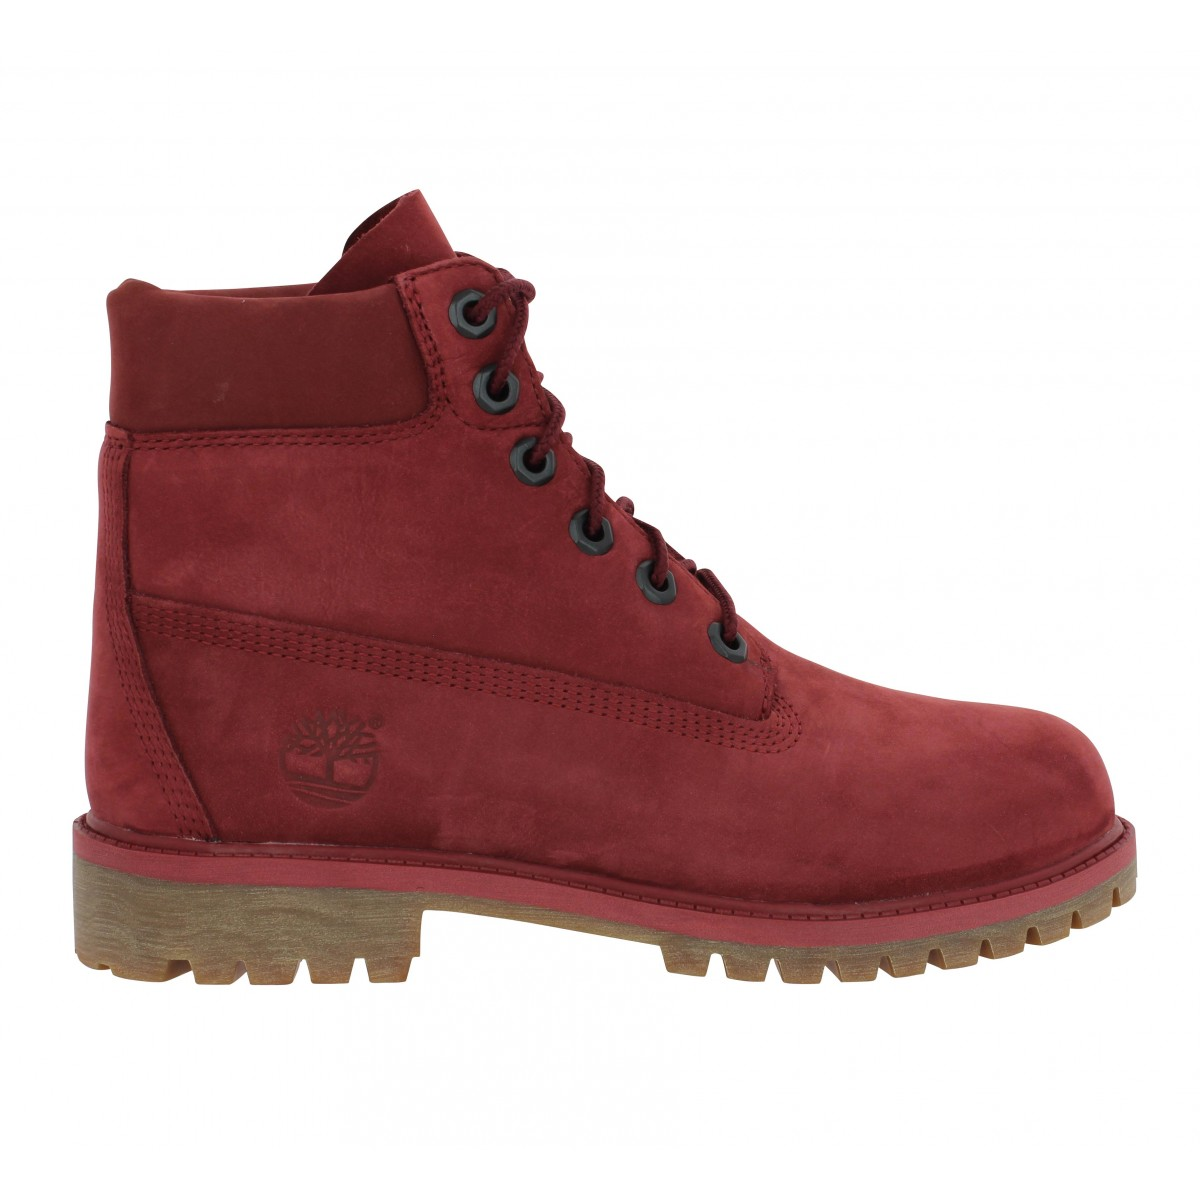 a56d8068be8 Chaussures Timberland 6in premium wp velours femme bordeaux femme ...